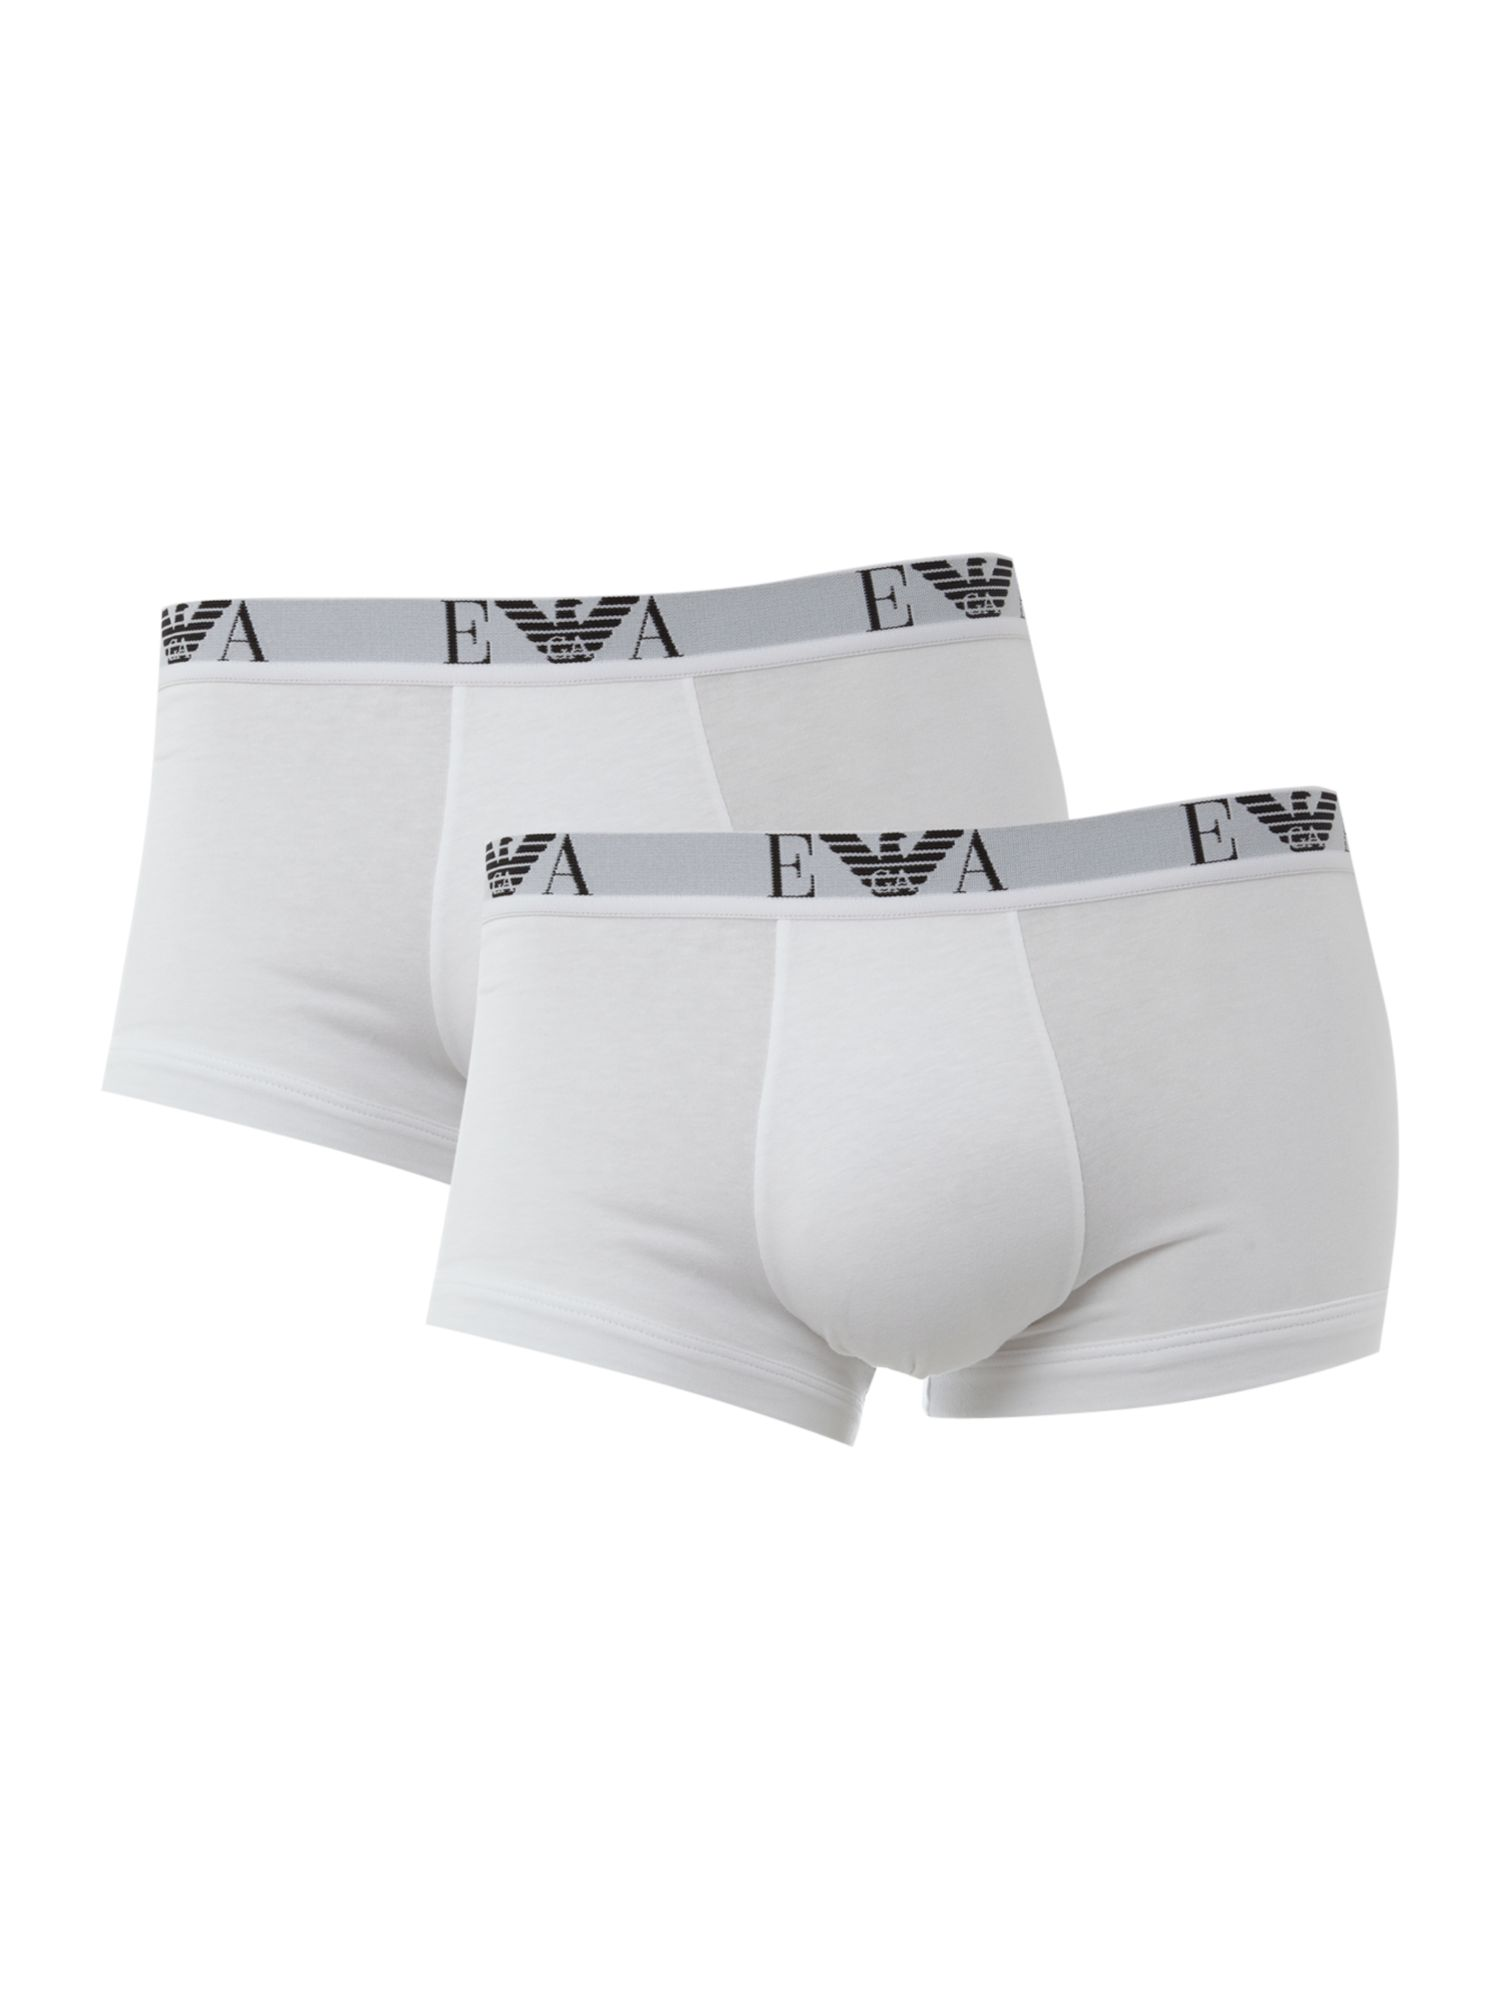 Mens Emporio Armani 2 pack underwear trunk White